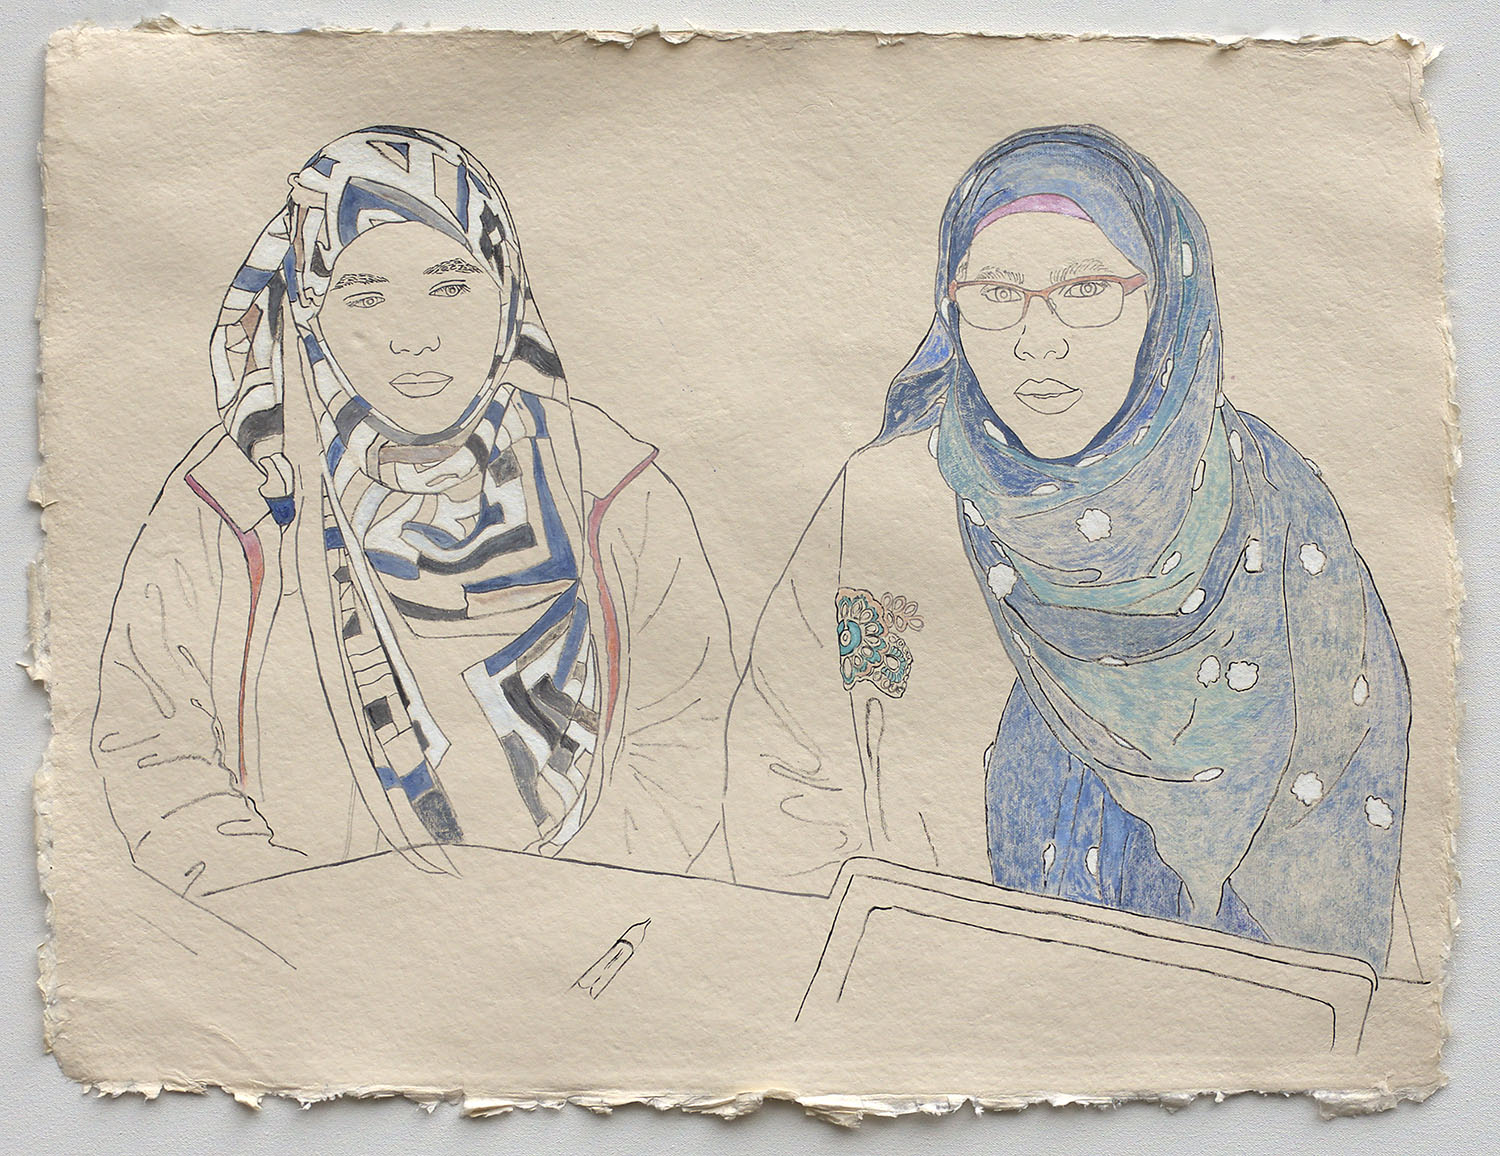 """Mother and Daughter, Applying for U.S. Citizenship  2019, ink, watercolor, gouache on handmade paper made in India from recycled clothing, 19"""" x 25"""""""